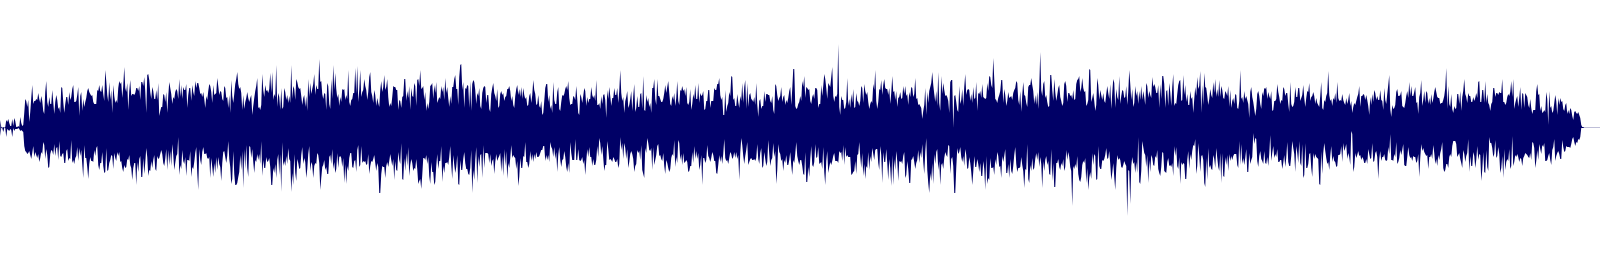 waveform of track #112990